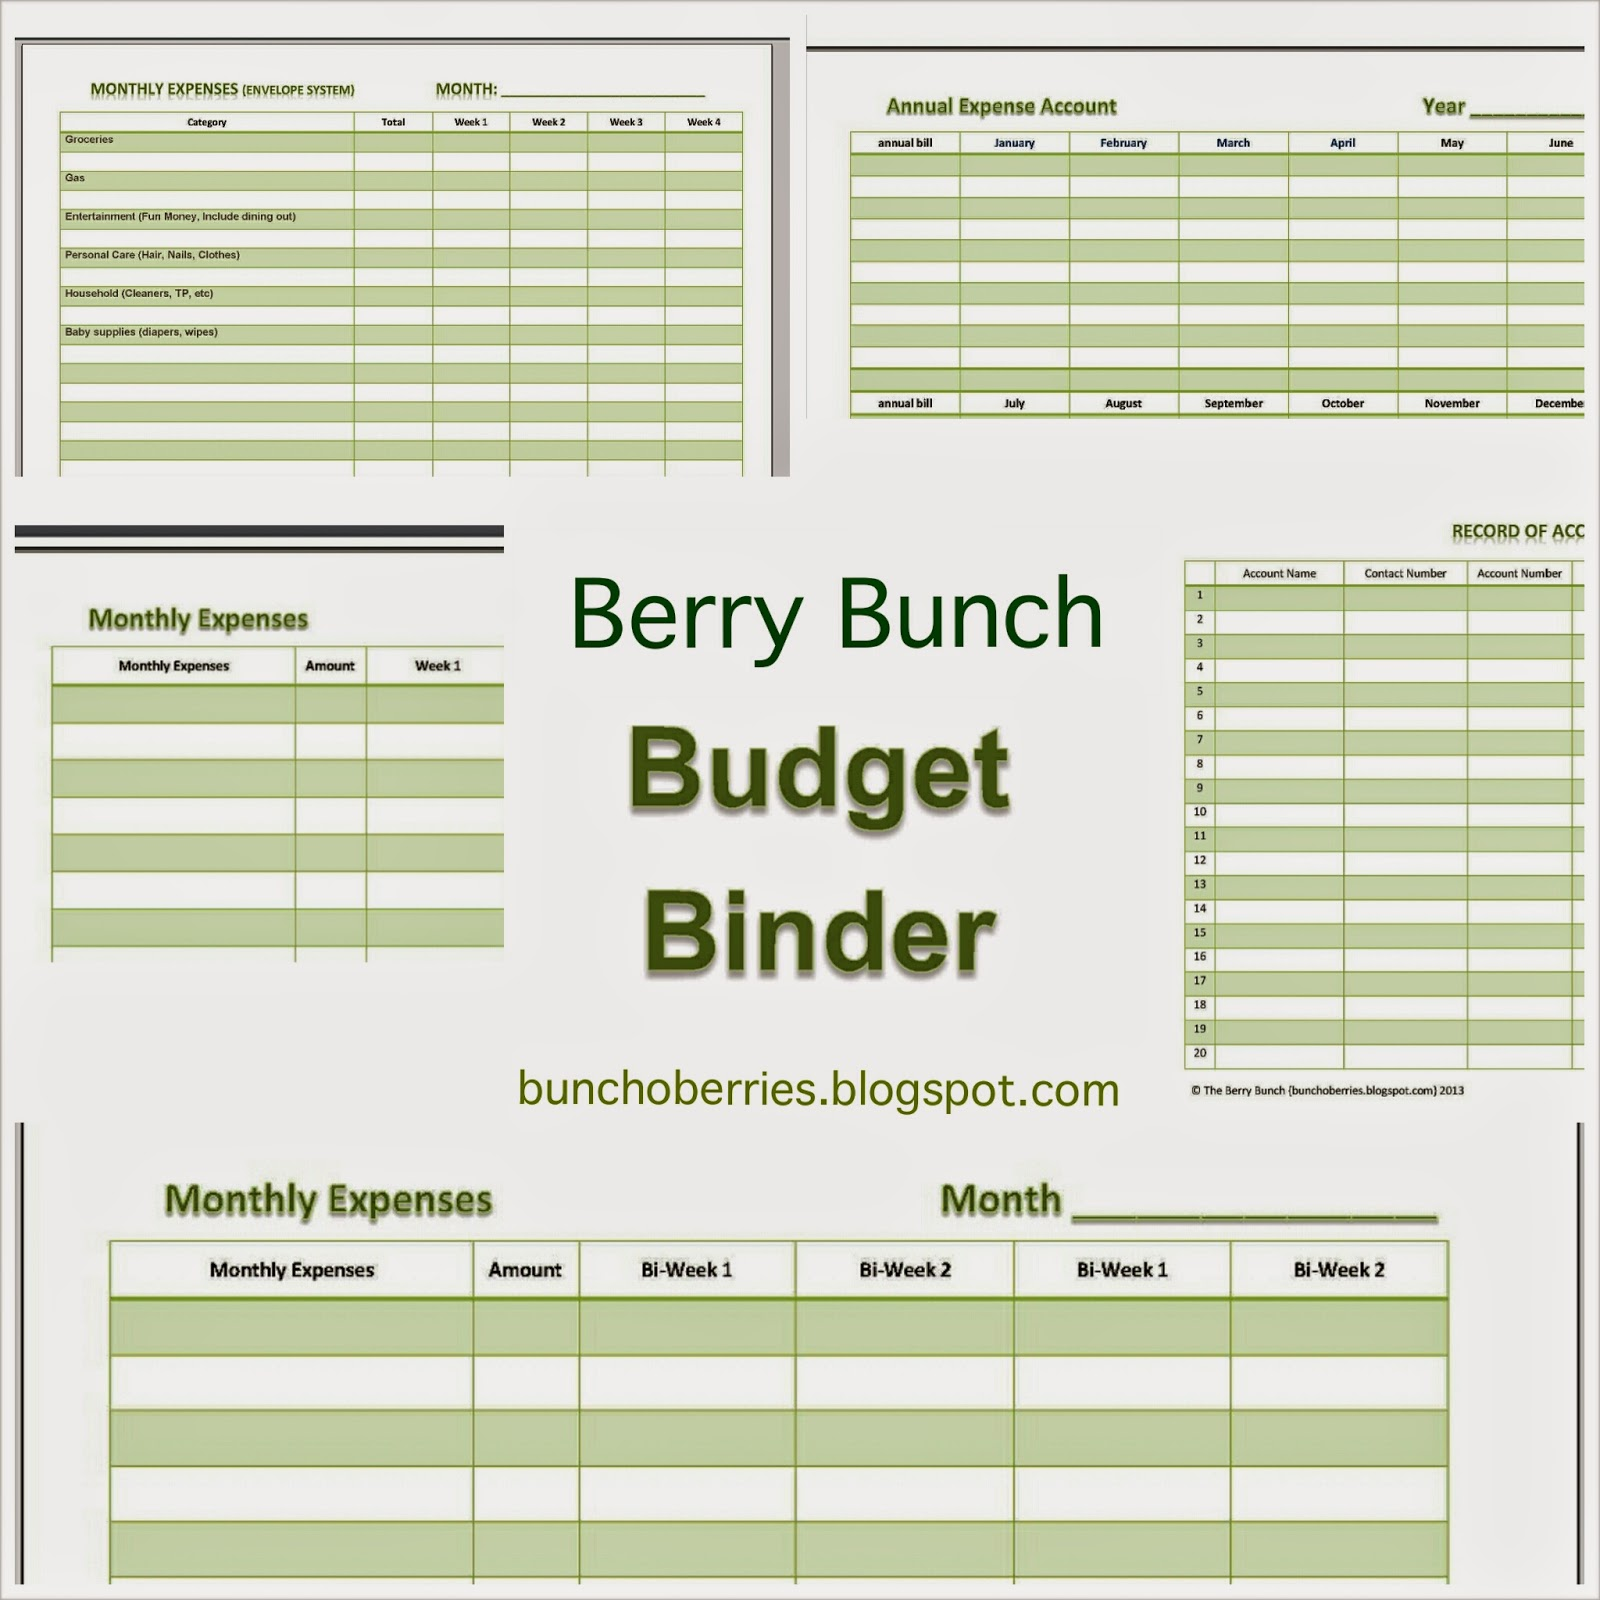 Establish a Budget: Free Budget Printable: Berry Bunch